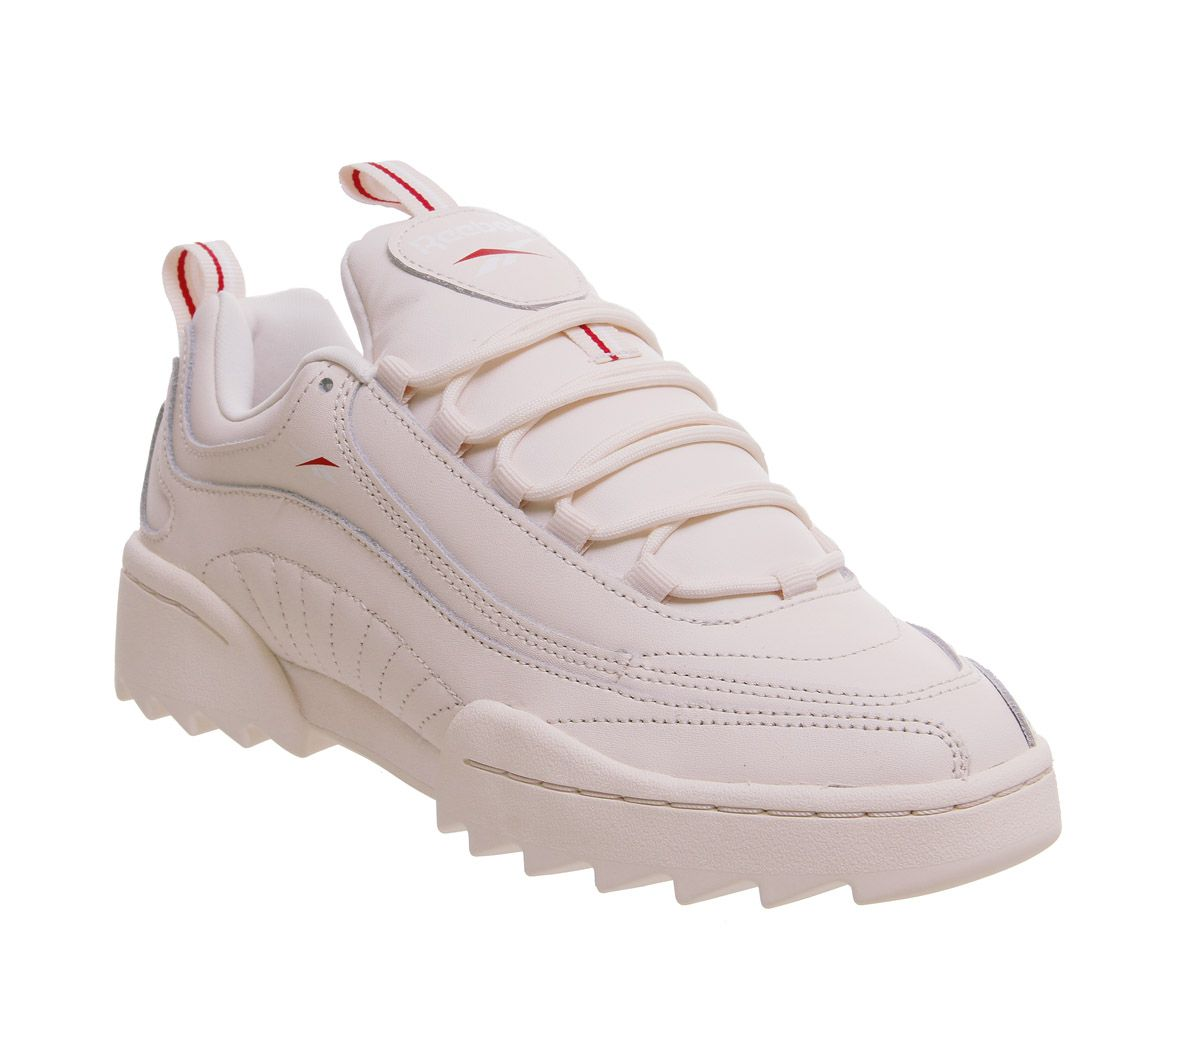 65d9912164d Reebok Rivyx Ripple Trainers Pale Pink White Excellent Red - Hers ...